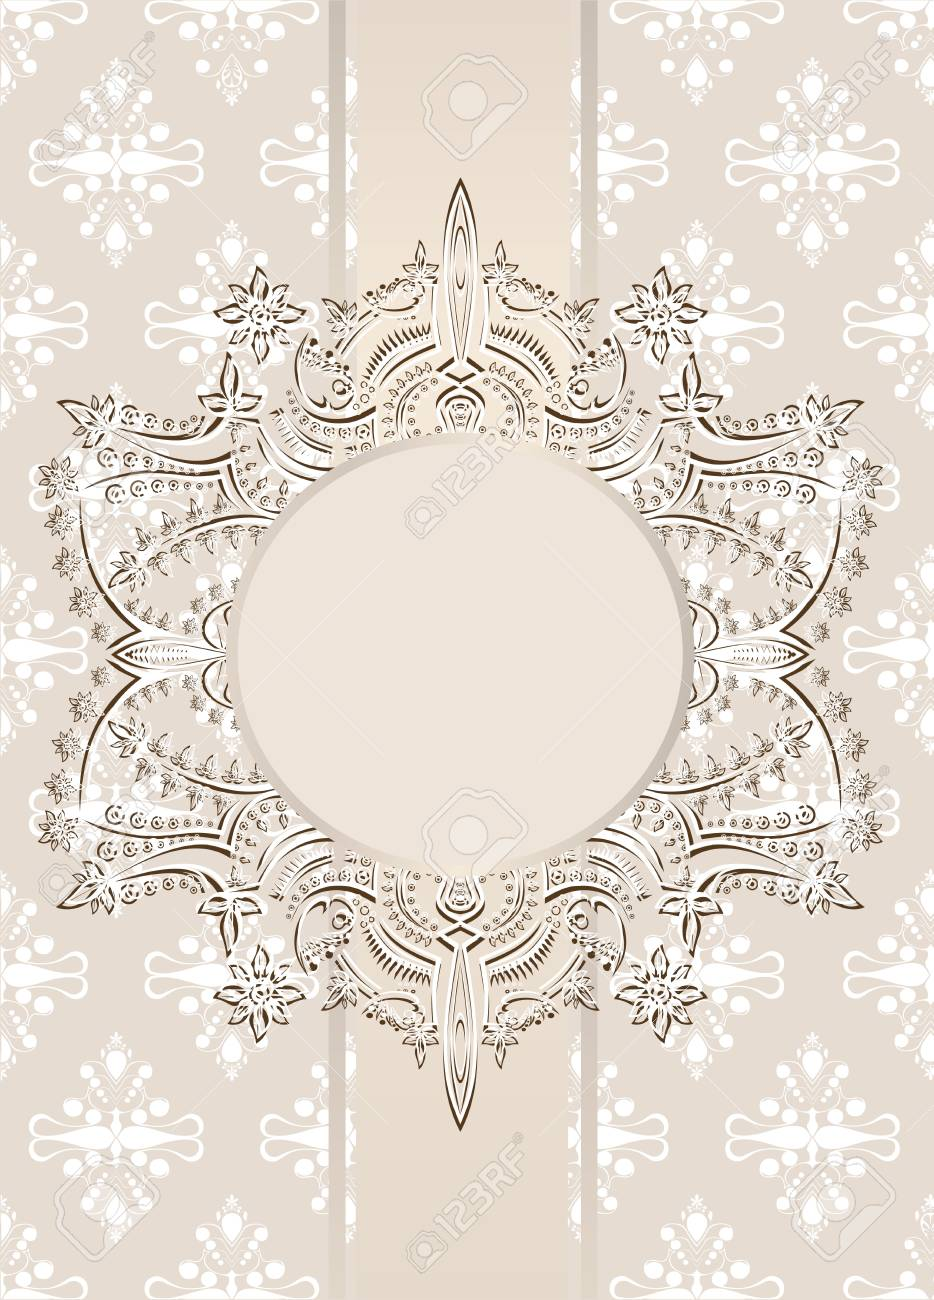 Vintage seamless wallpaper with a ribbon and frame Stock Vector - 22894267